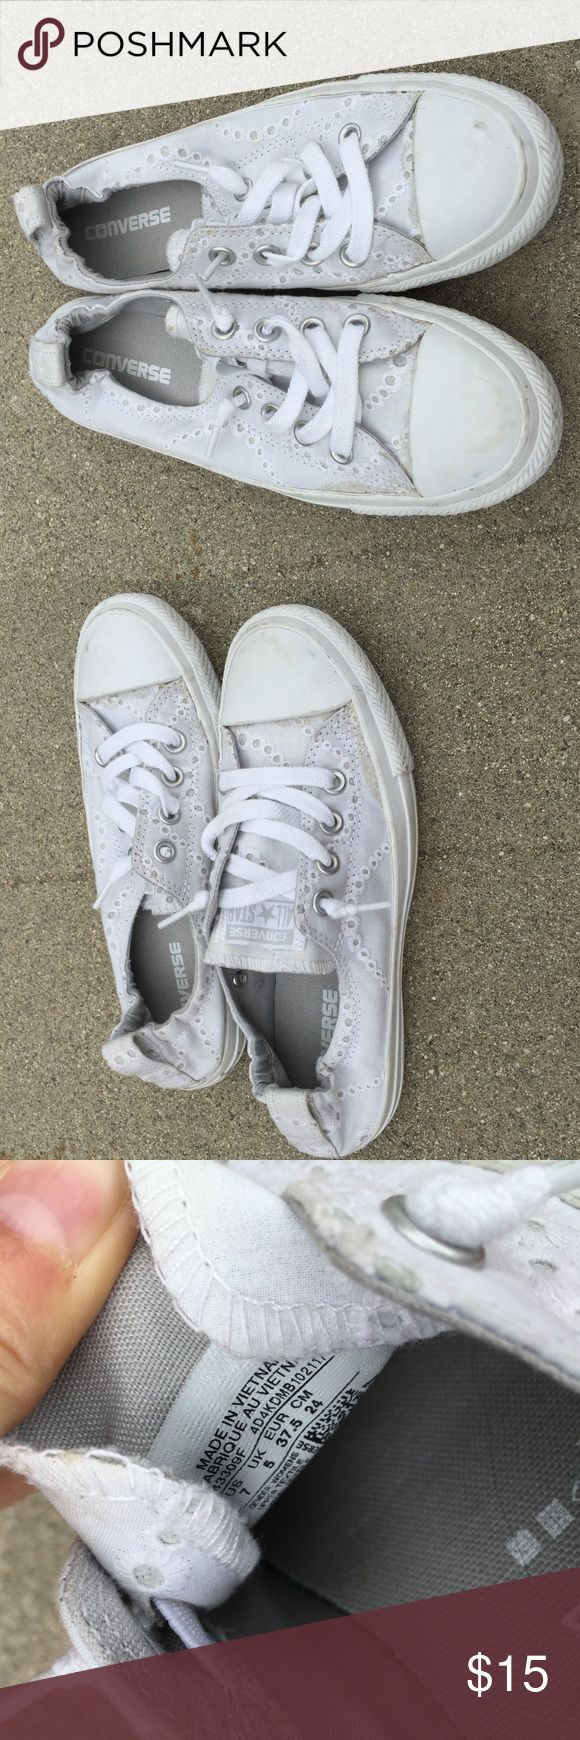 Converse chuck Taylor no lace sneakers Cute white chuck Taylor converse sneakers with eyelet lace details. No need to tie the laces. Great condition, only worn a couple of times. Converse Shoes Sneakers